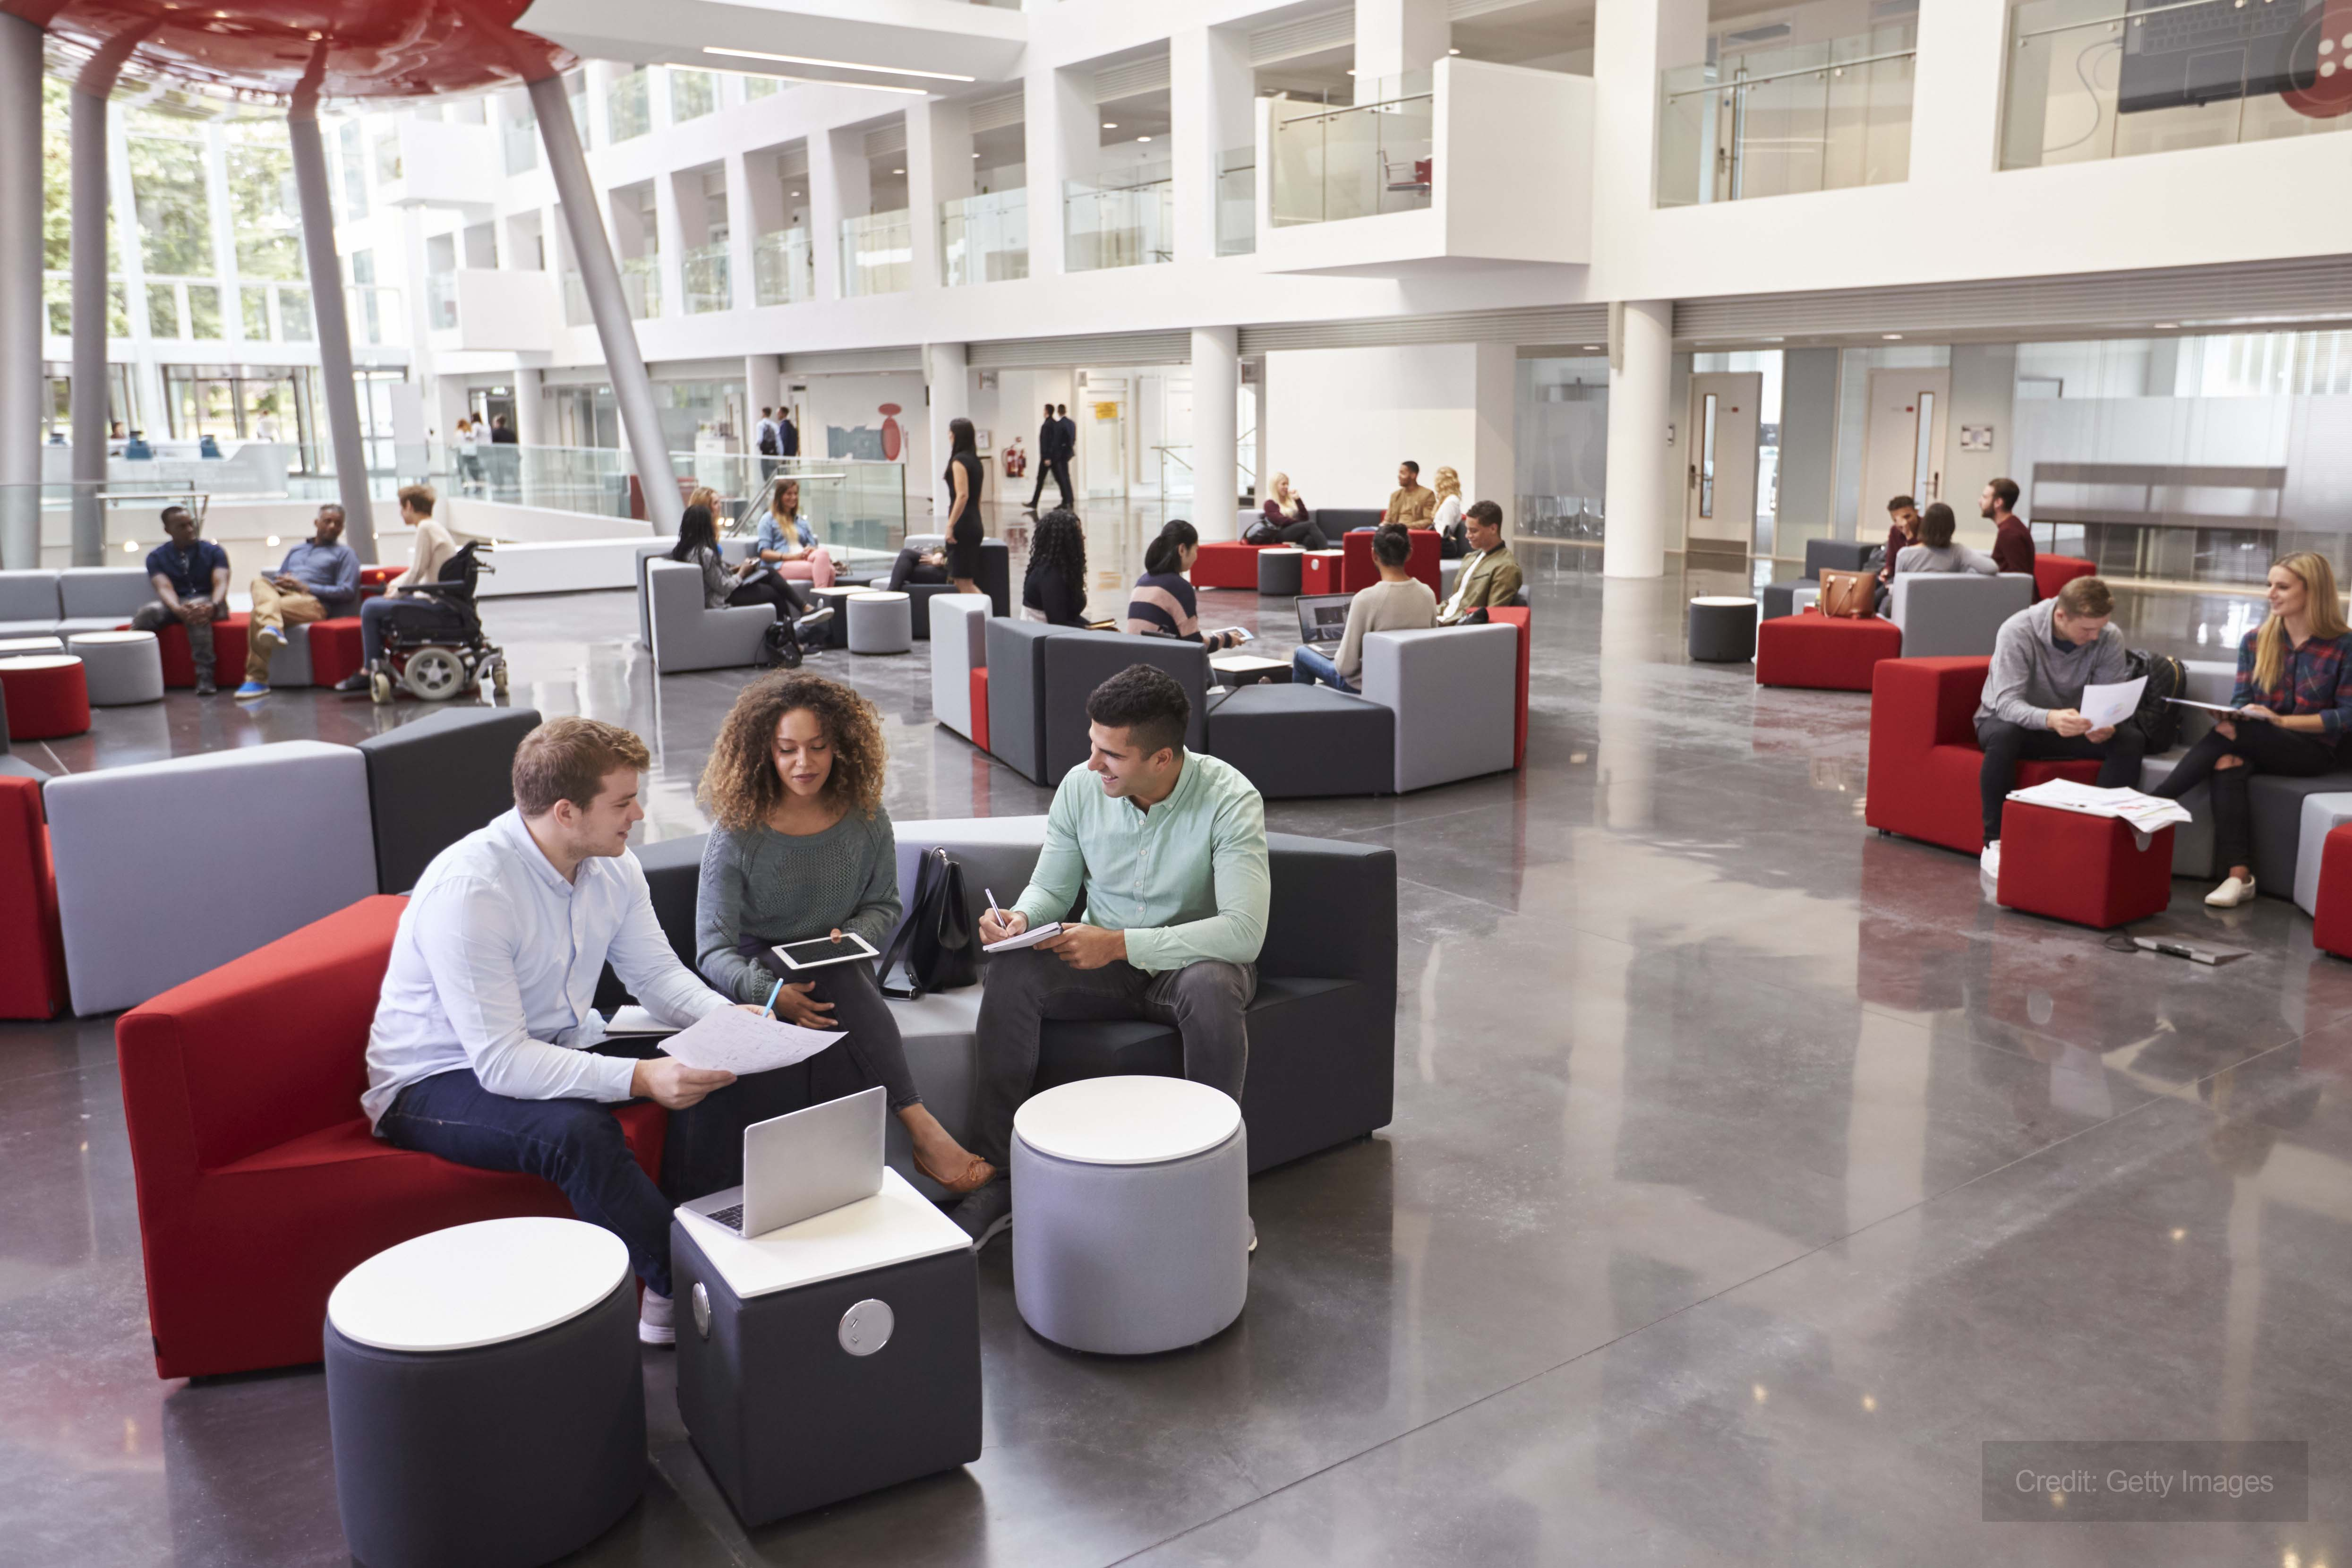 University campus provided with temporary heating and hot water